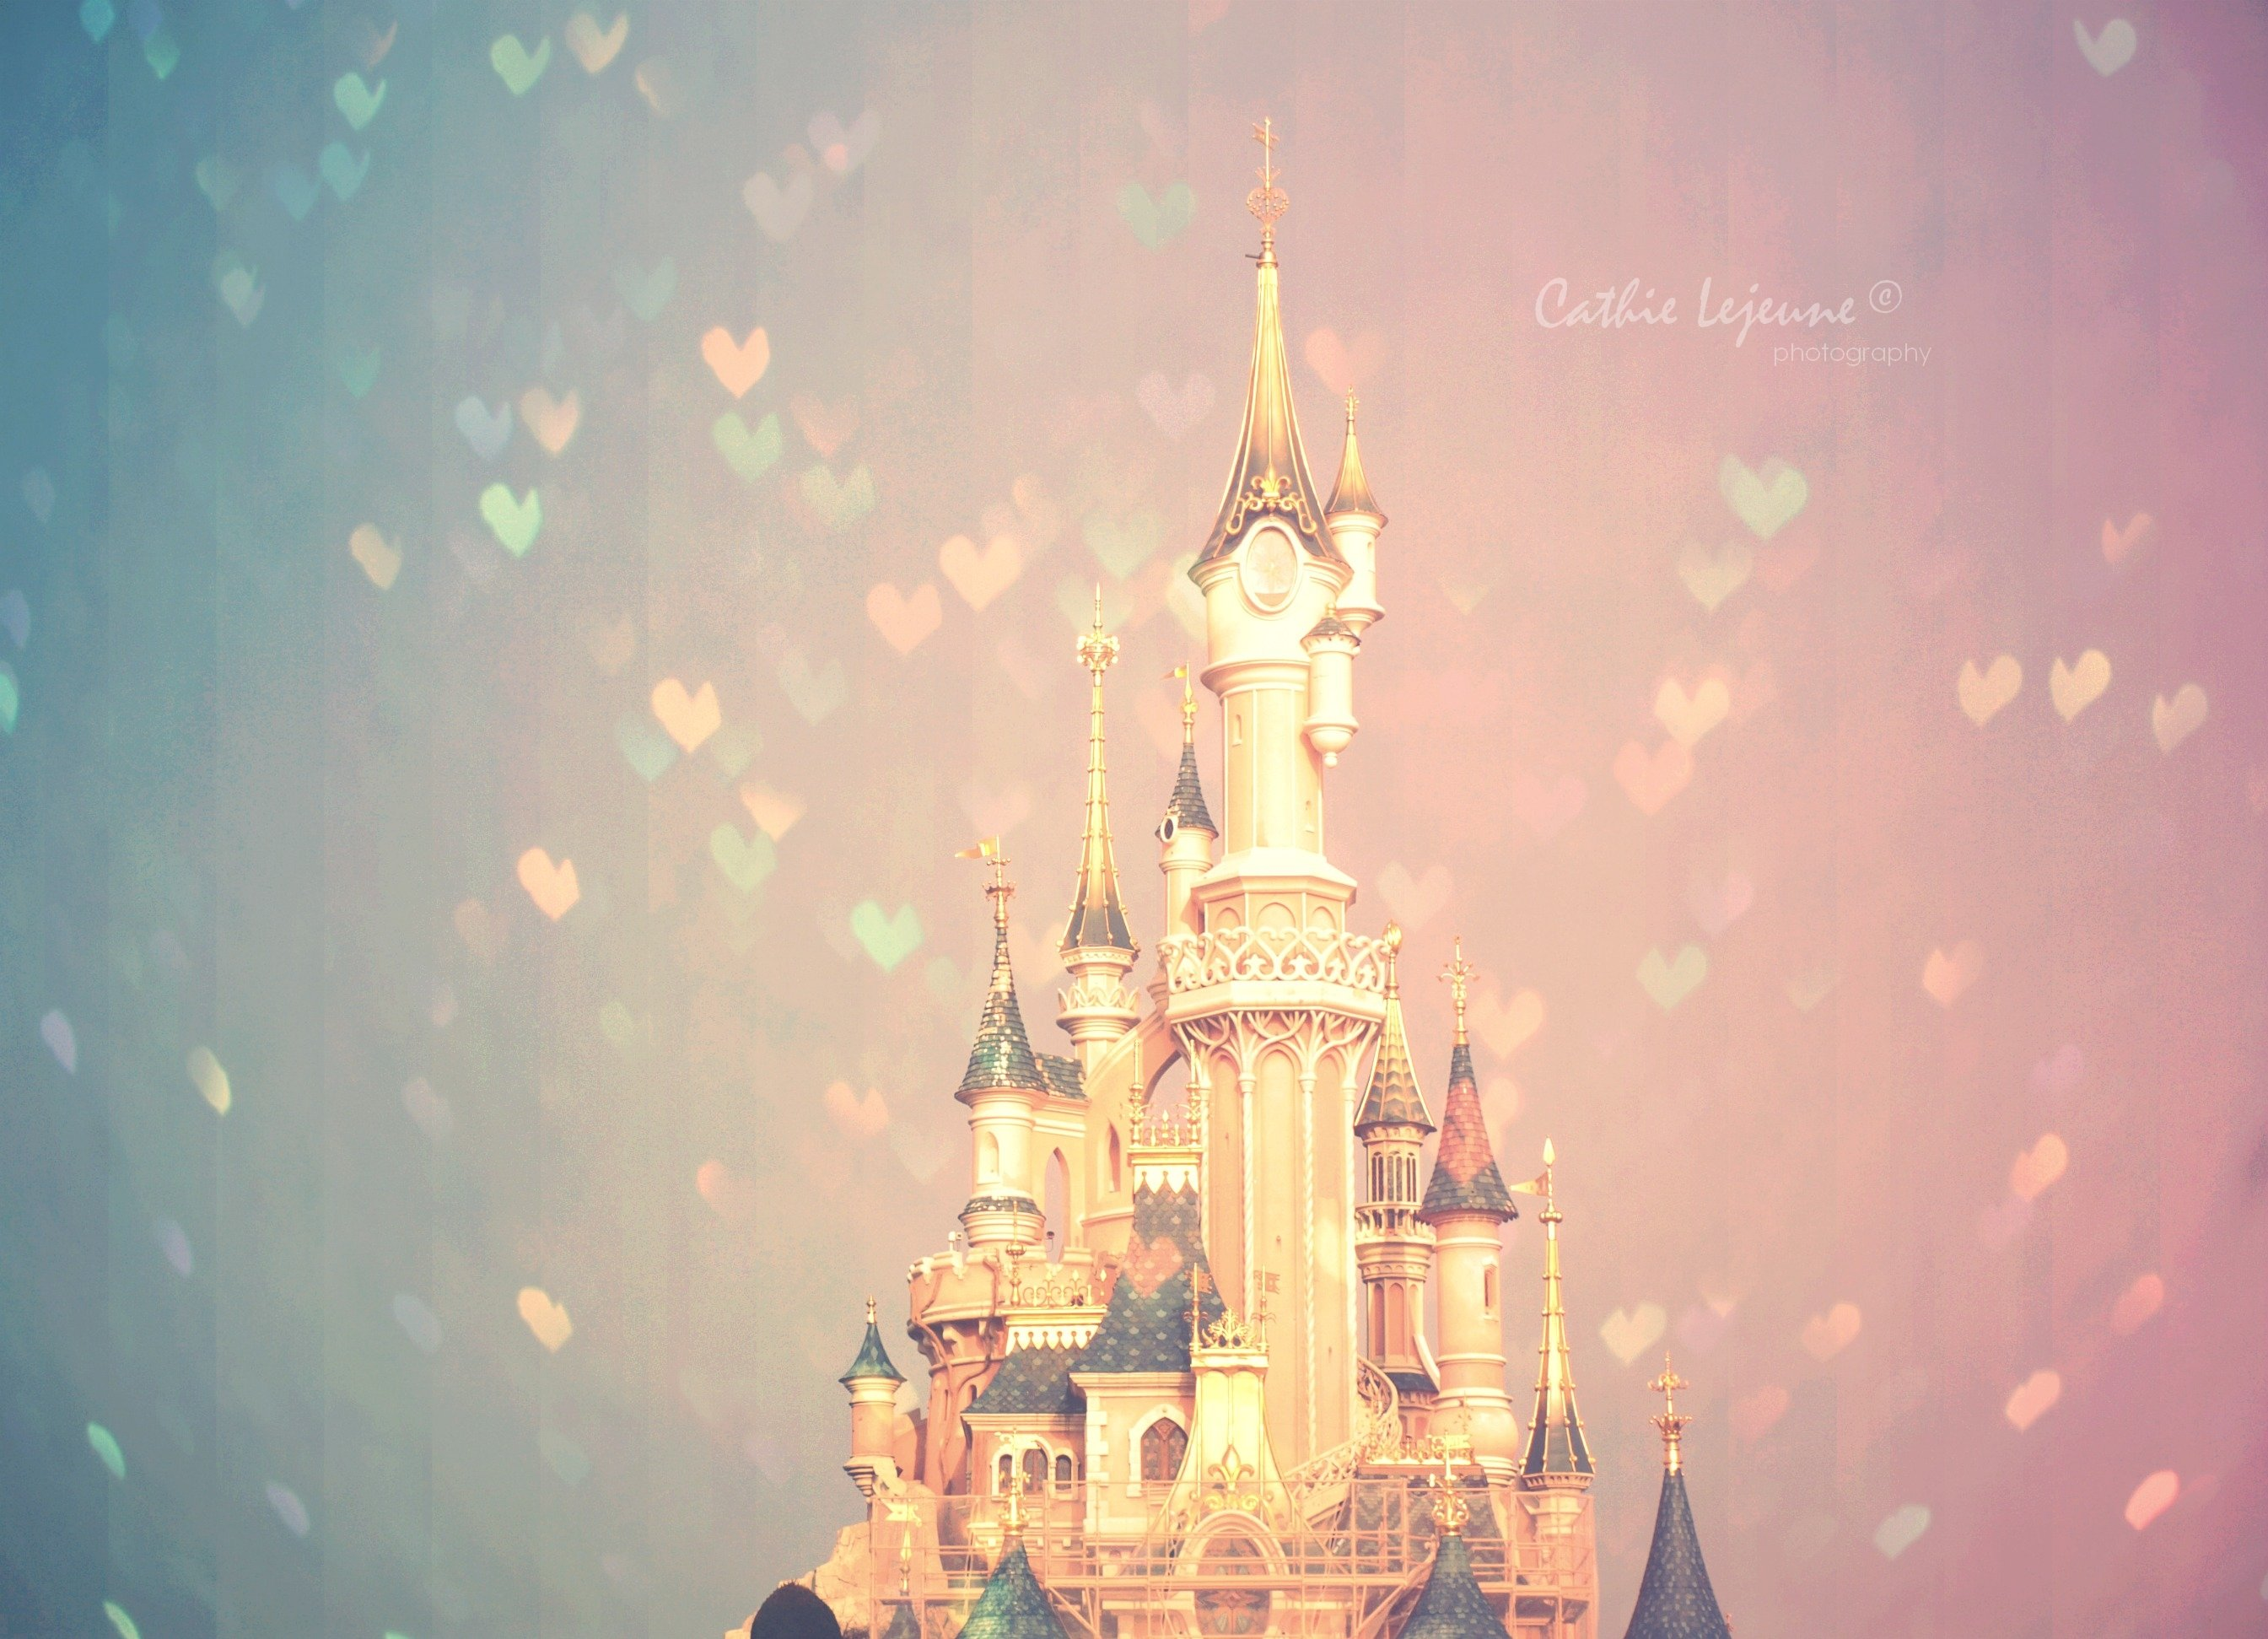 Displaying 17 Images For   Disney Castle Backgrounds Tumblr 2689x1943